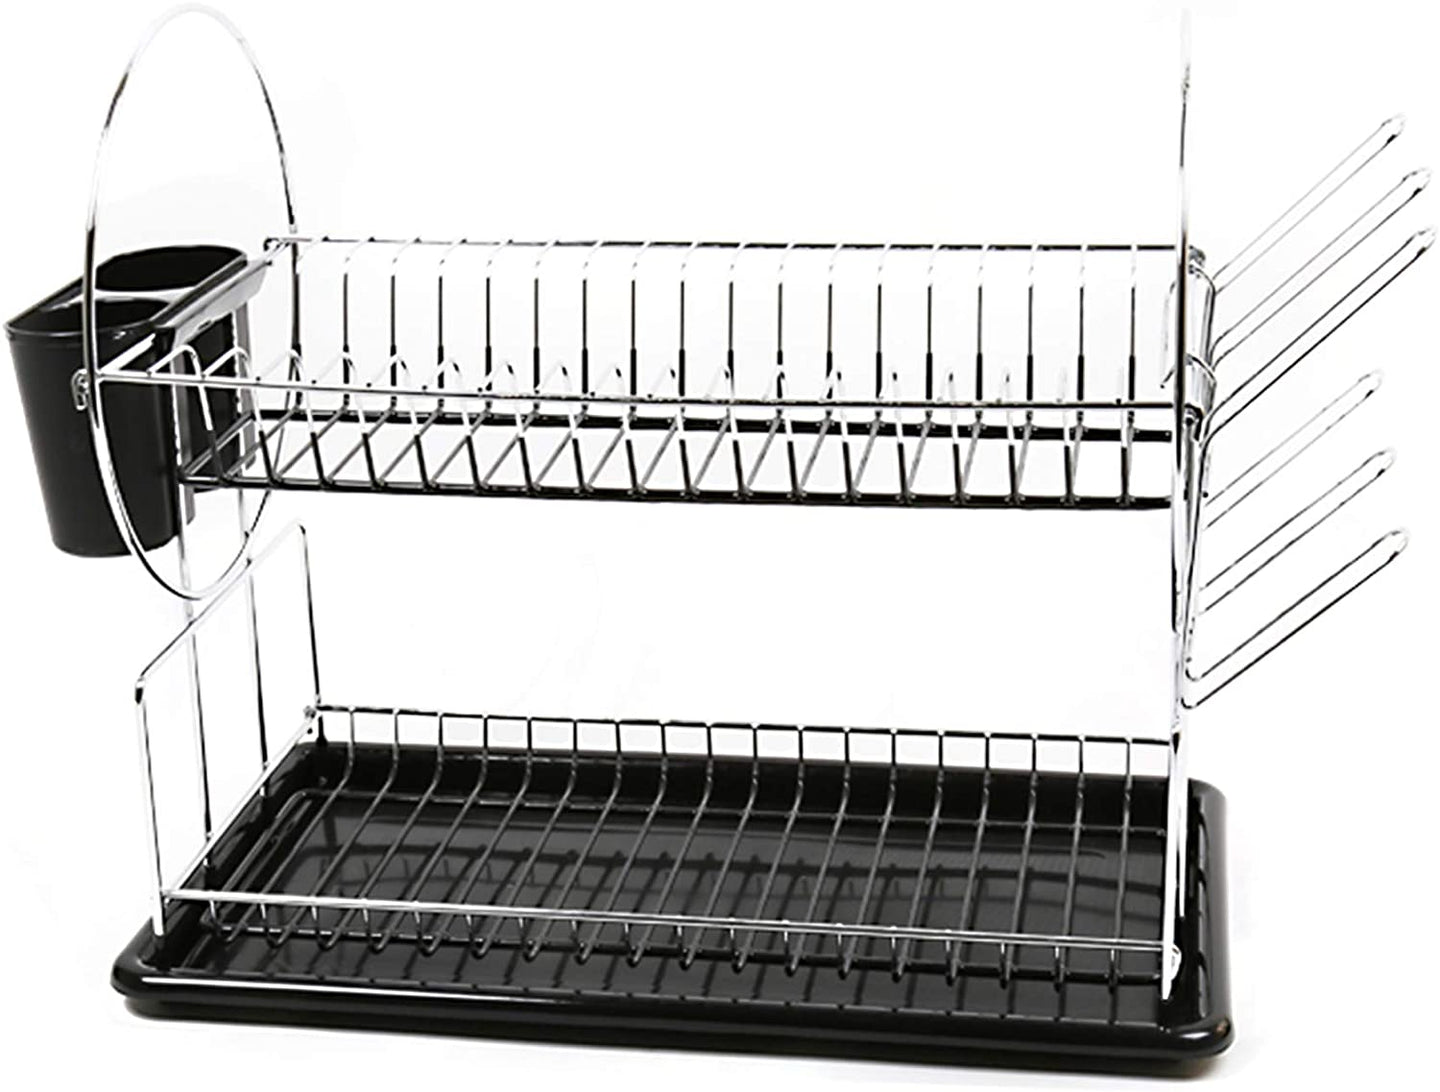 Luciano Housewares Heavy Duty Kitchen Essential Dish Drying Rack, 12 x 12 inches